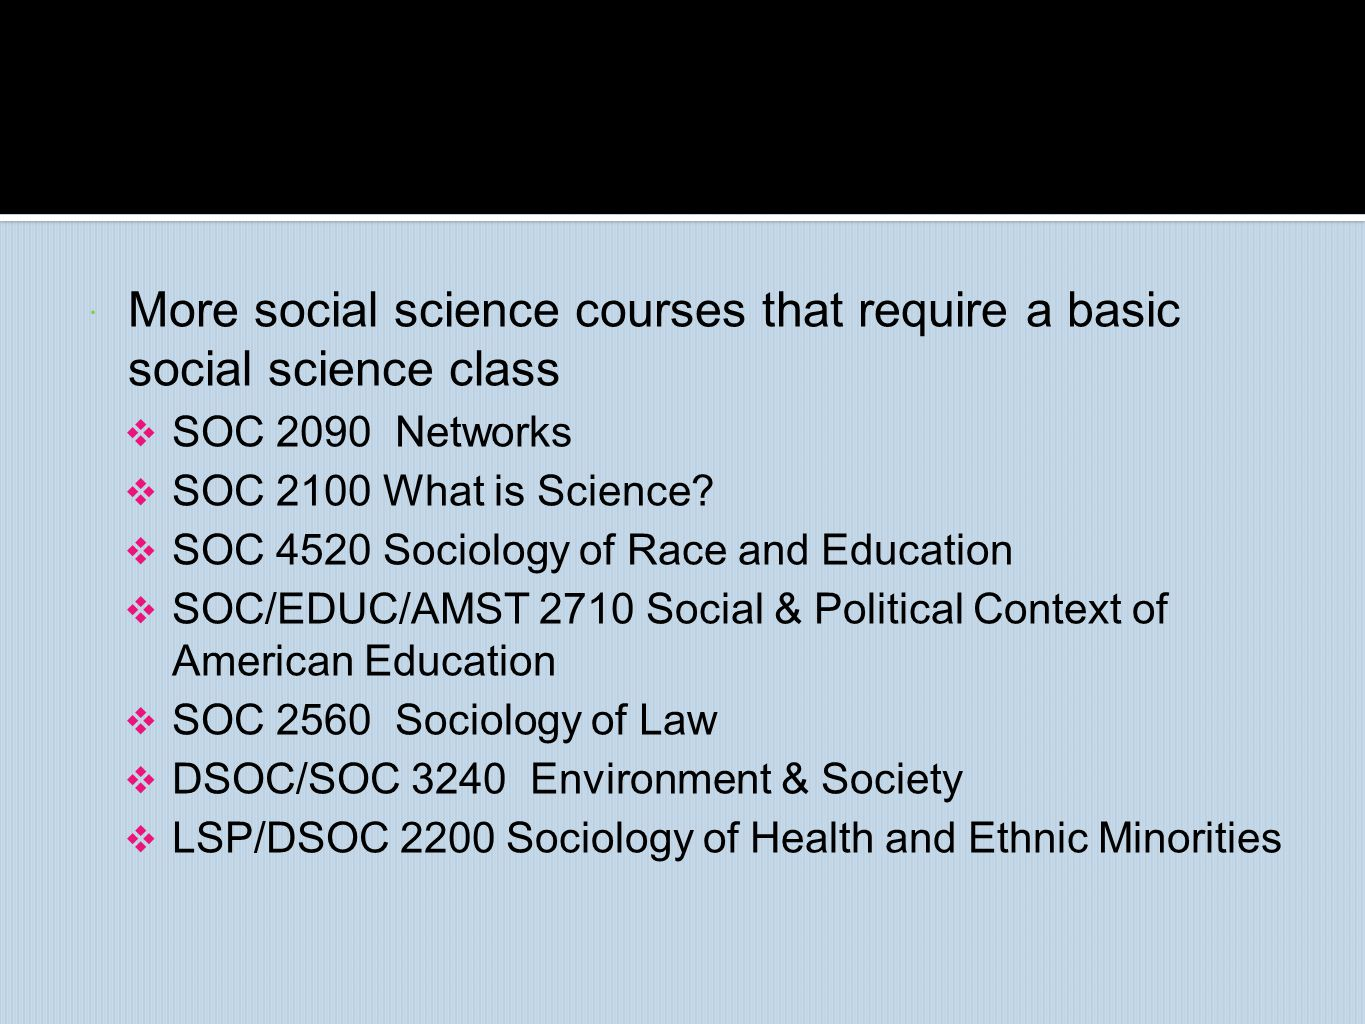 More social science courses that require a basic social science class